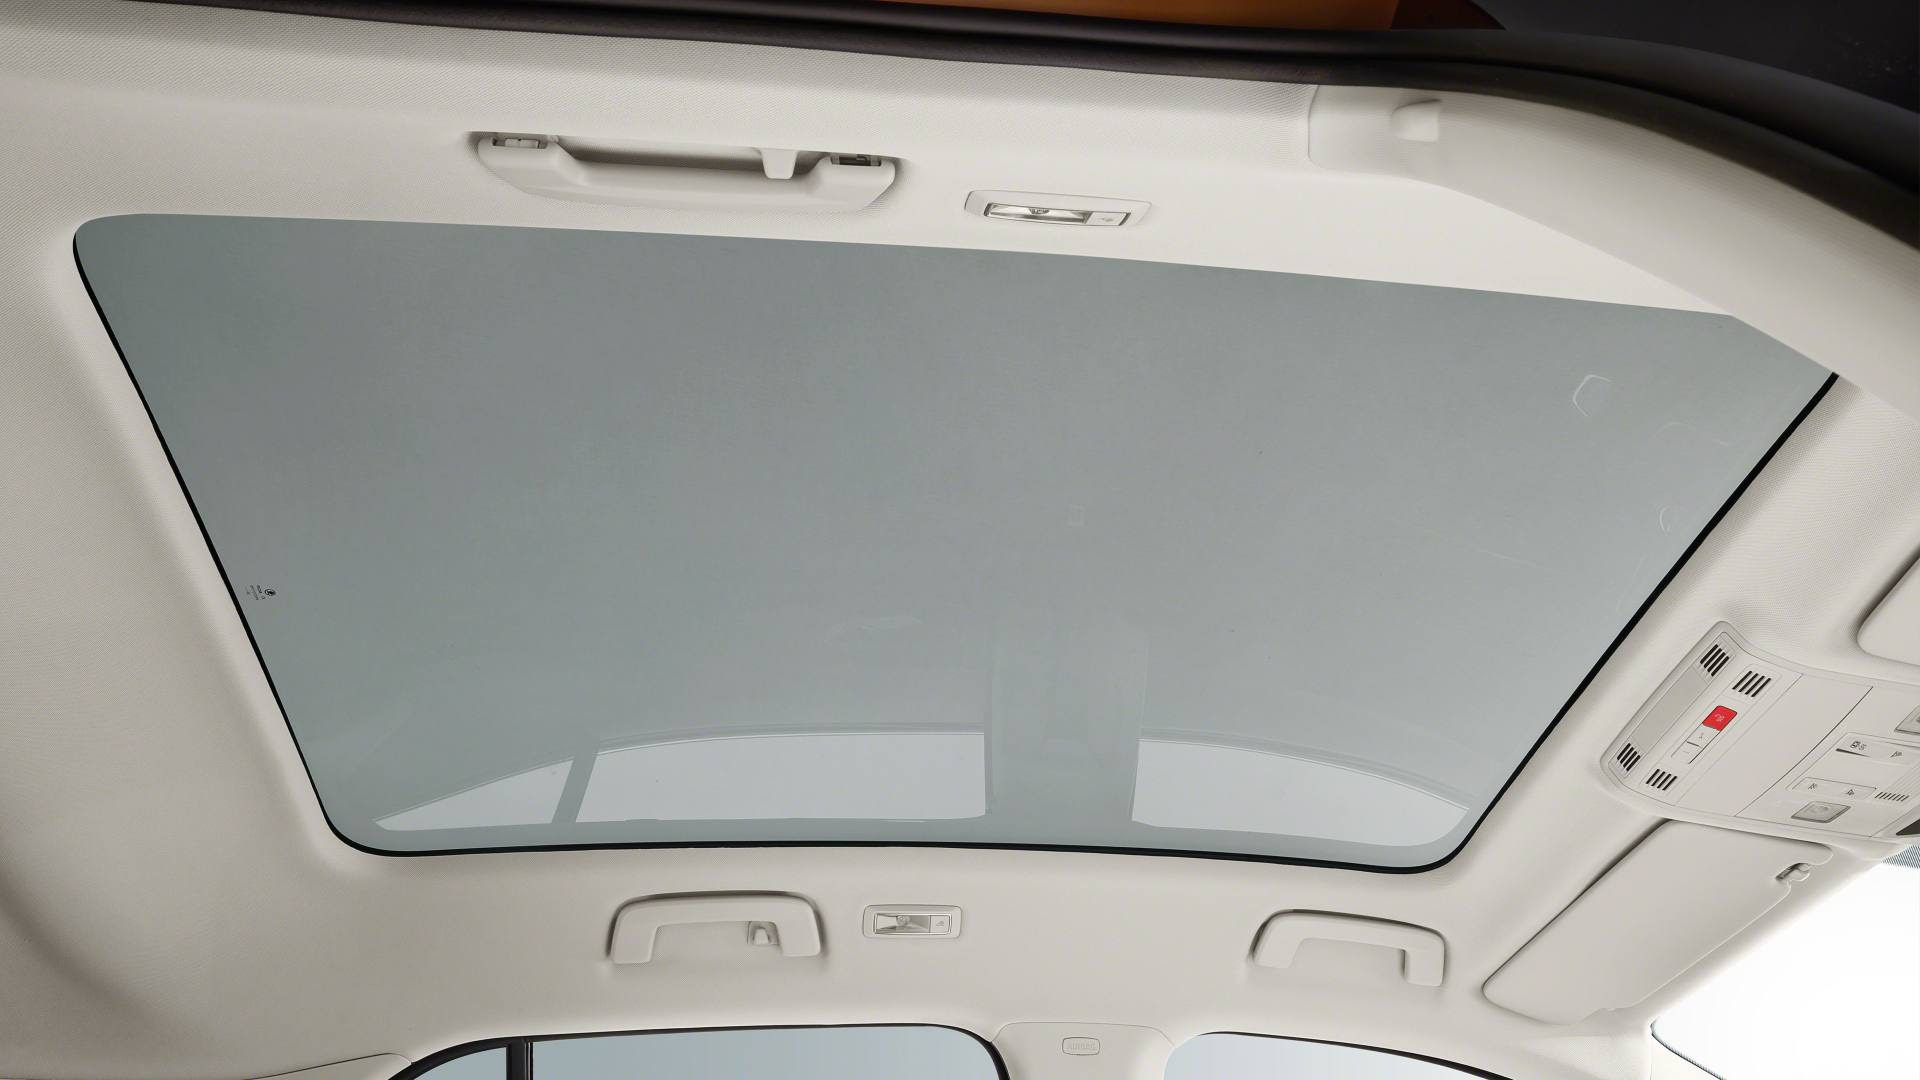 Panoramic sunroof will certainly enhance feeling of airiness inside the new Fabia. Image: Skoda